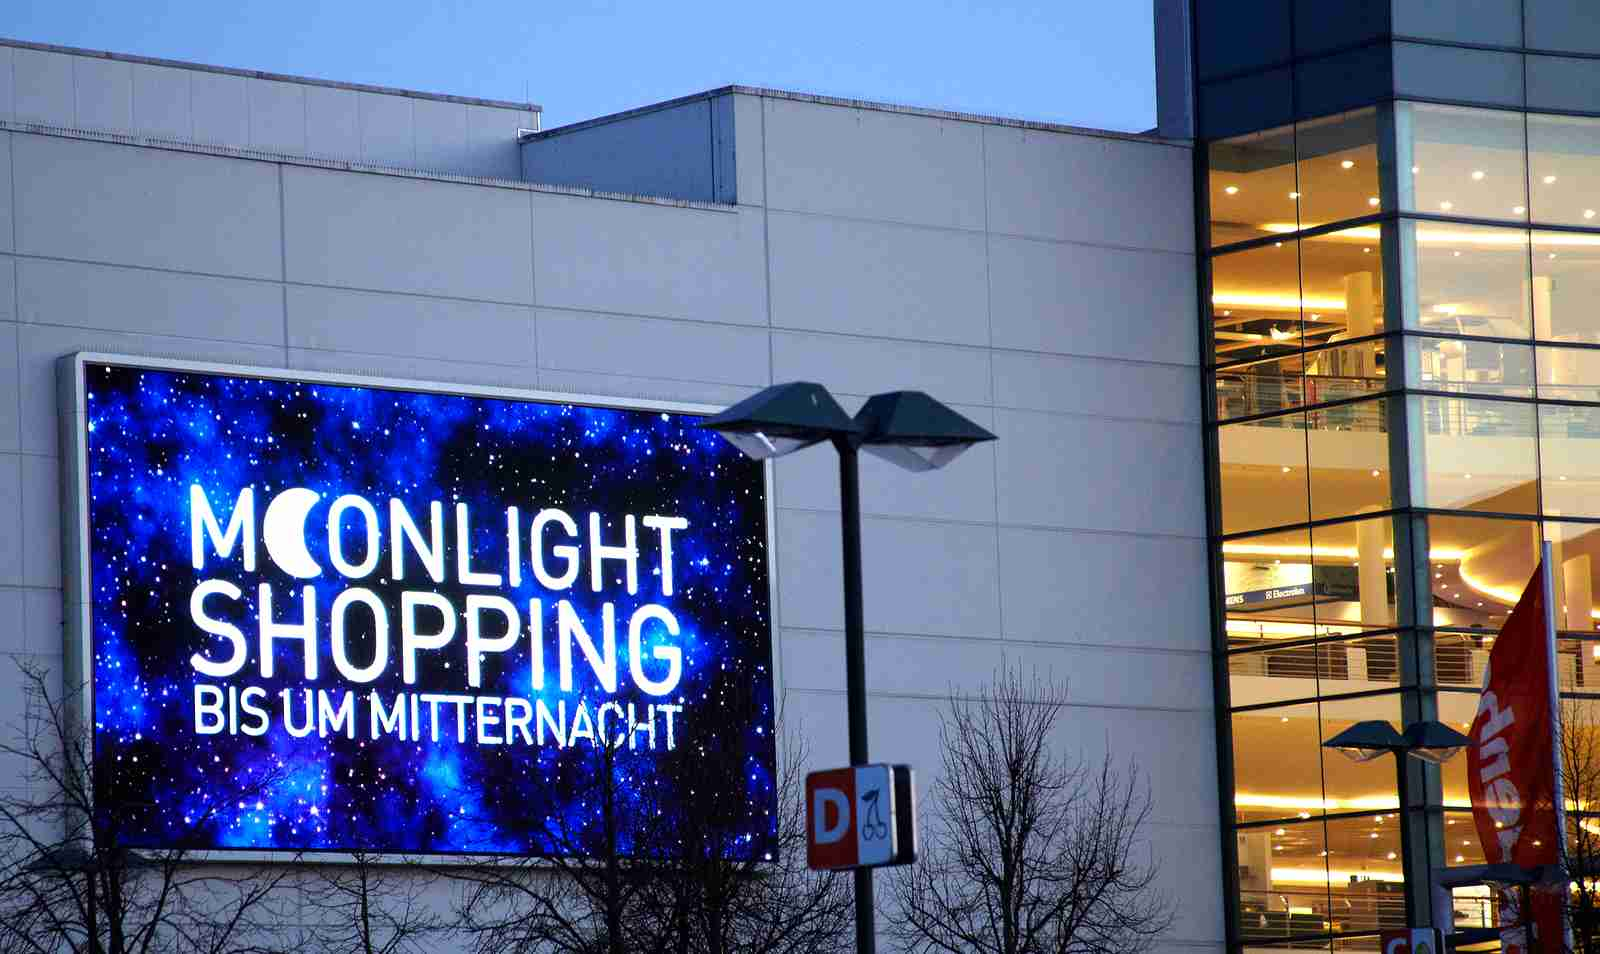 Moonlight-Shopping bei dodenhof Foto: dodenhof